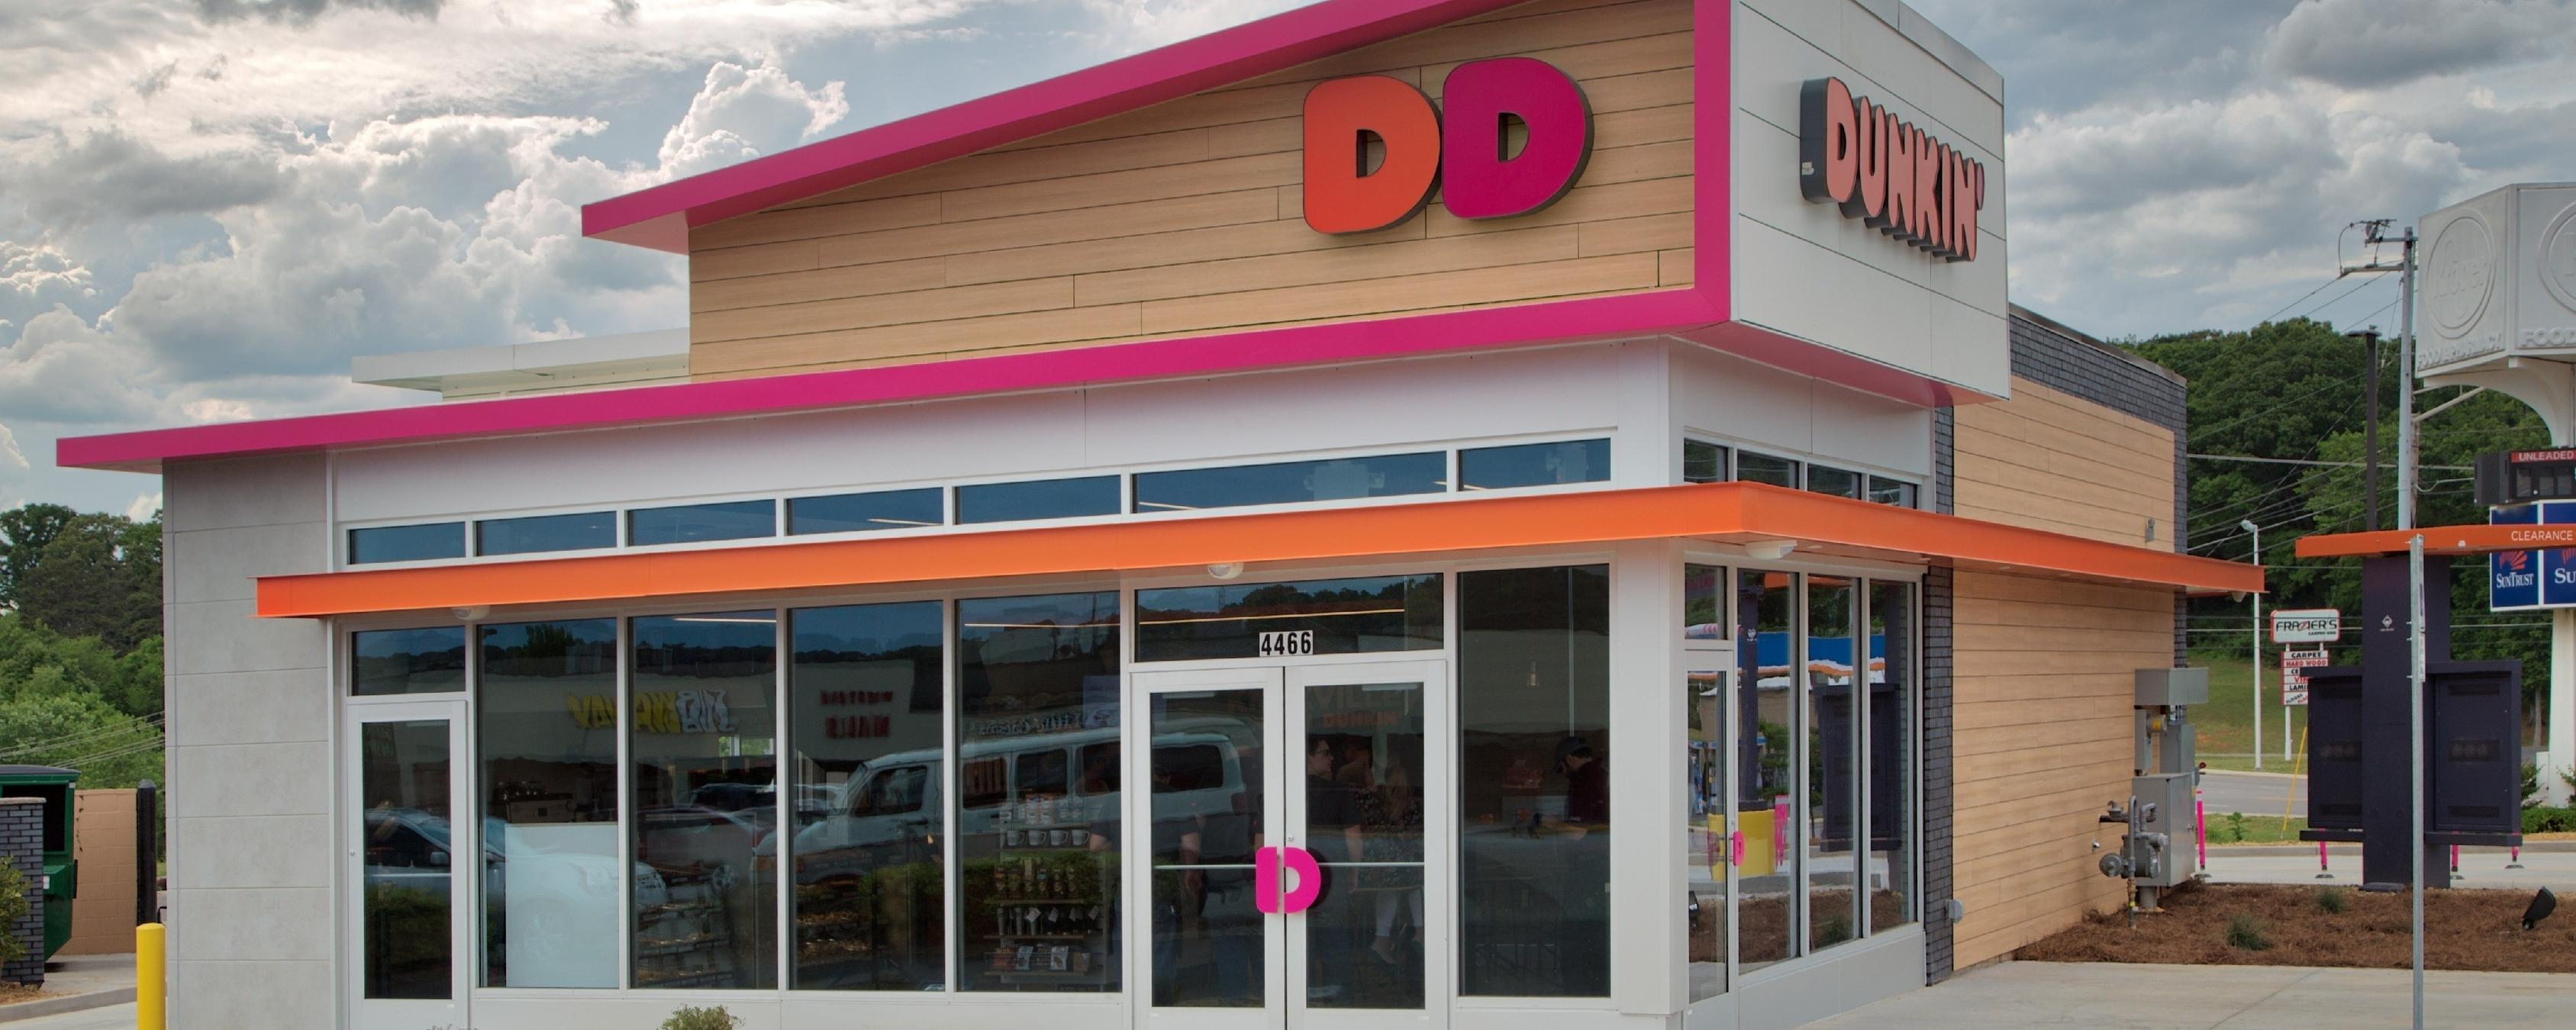 Dunkin' Brand Cover